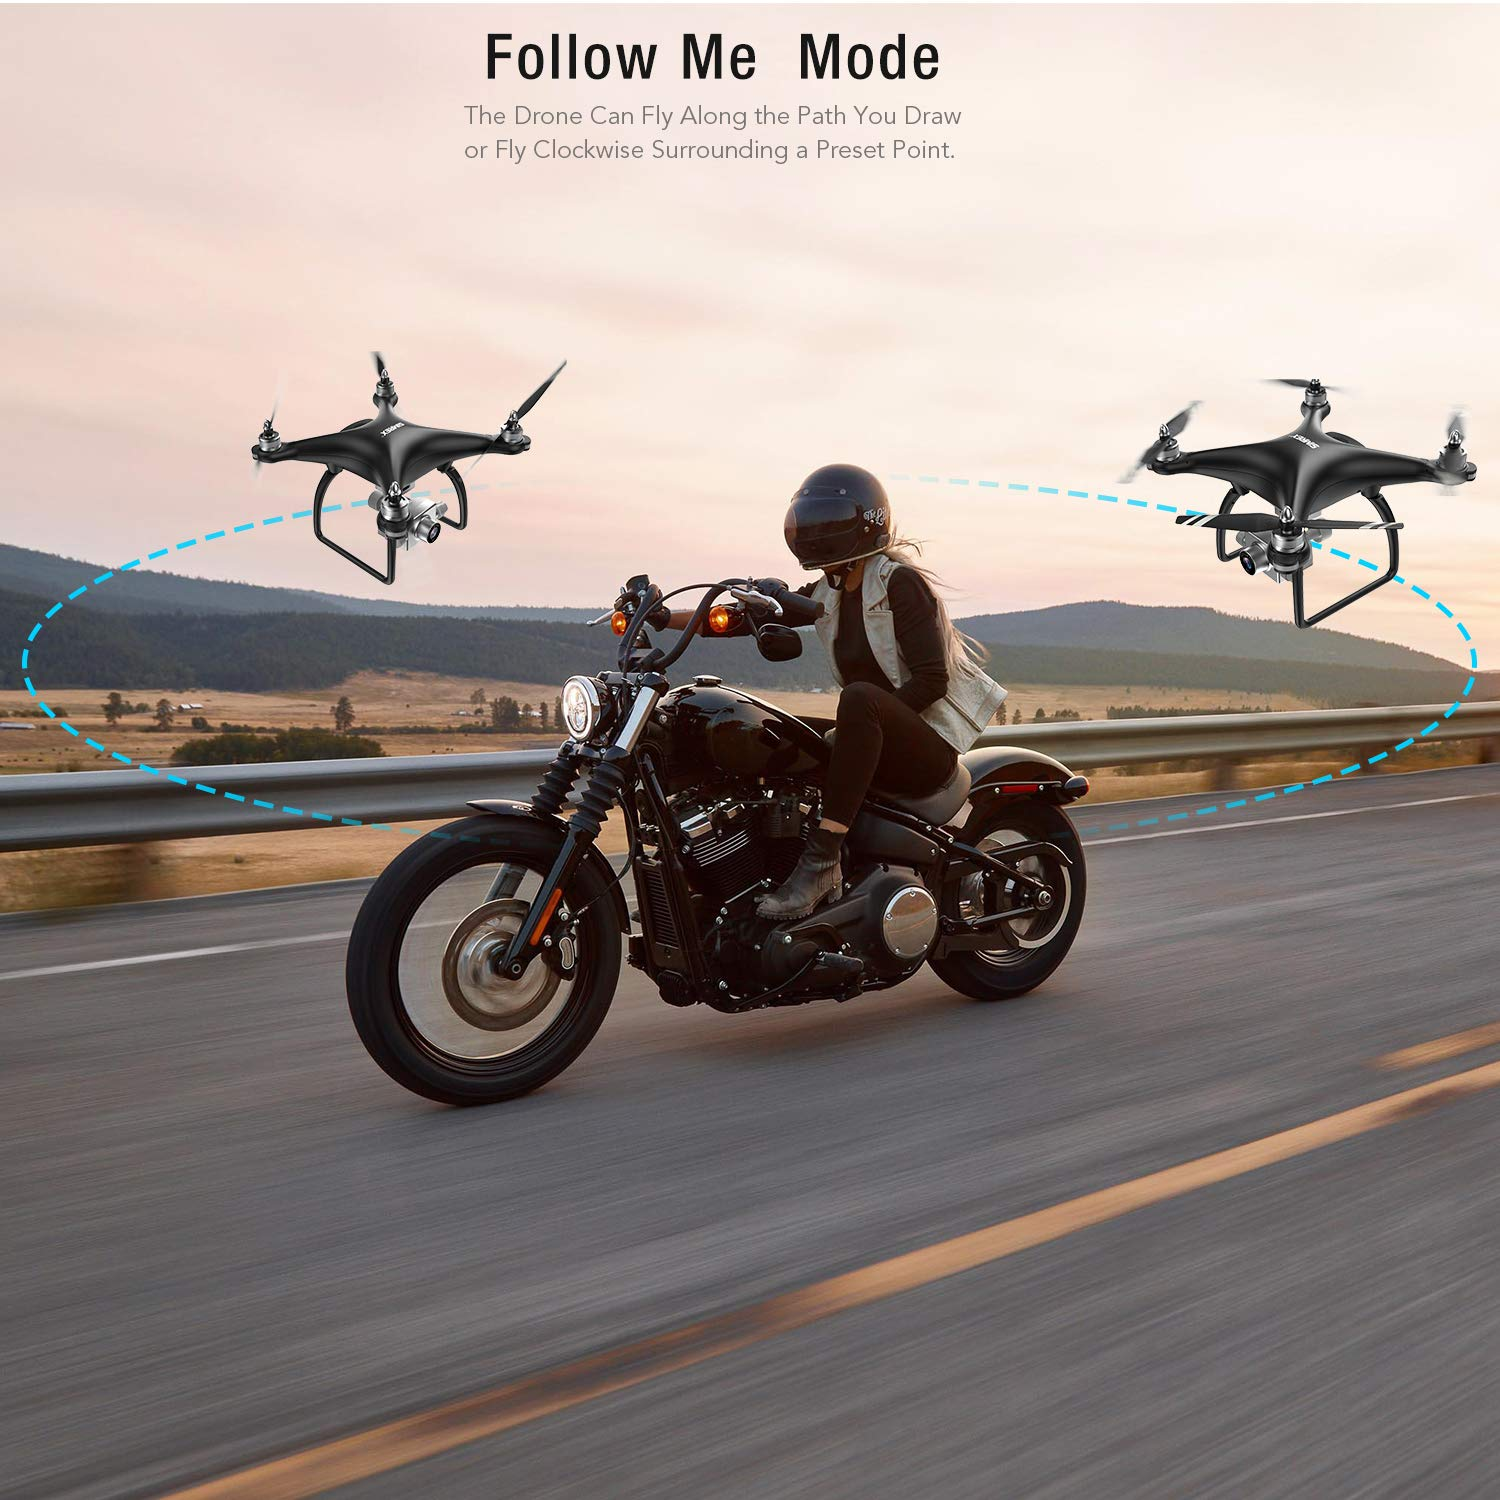 SIMREX X11 Upgraded GPS Drone with 1080P HD Camera 2-Axis Self stabilizing Gimbal 5G WiFi FPV Video RC Quadcopter Auto Return Home with Follow Me Altitude Hold Headless Brushless Motor Remote Control